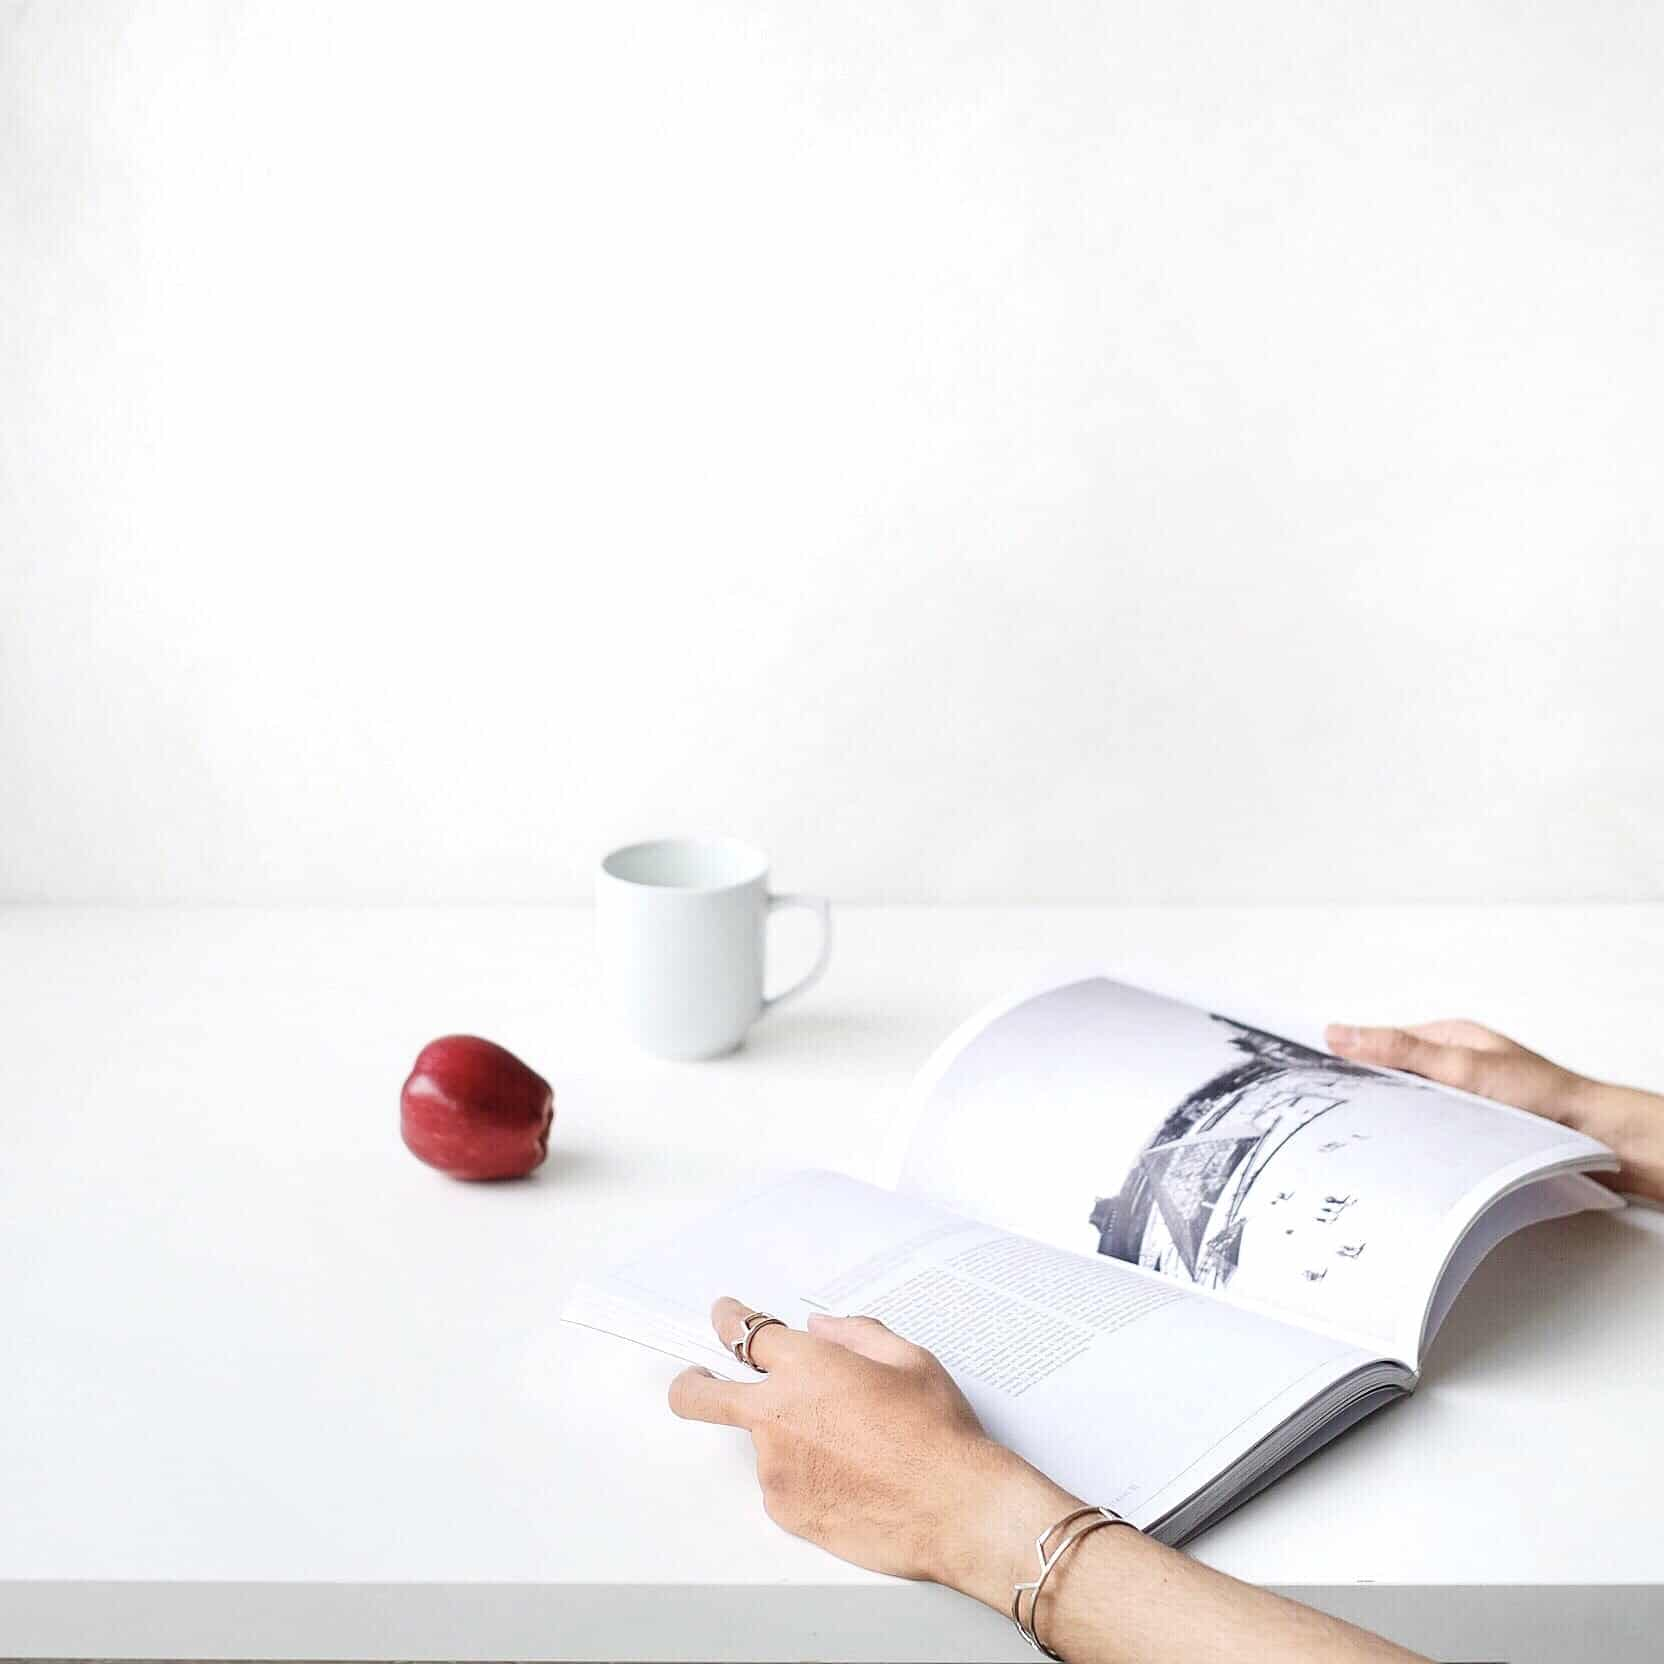 Woman's hands next to an apple while reading book